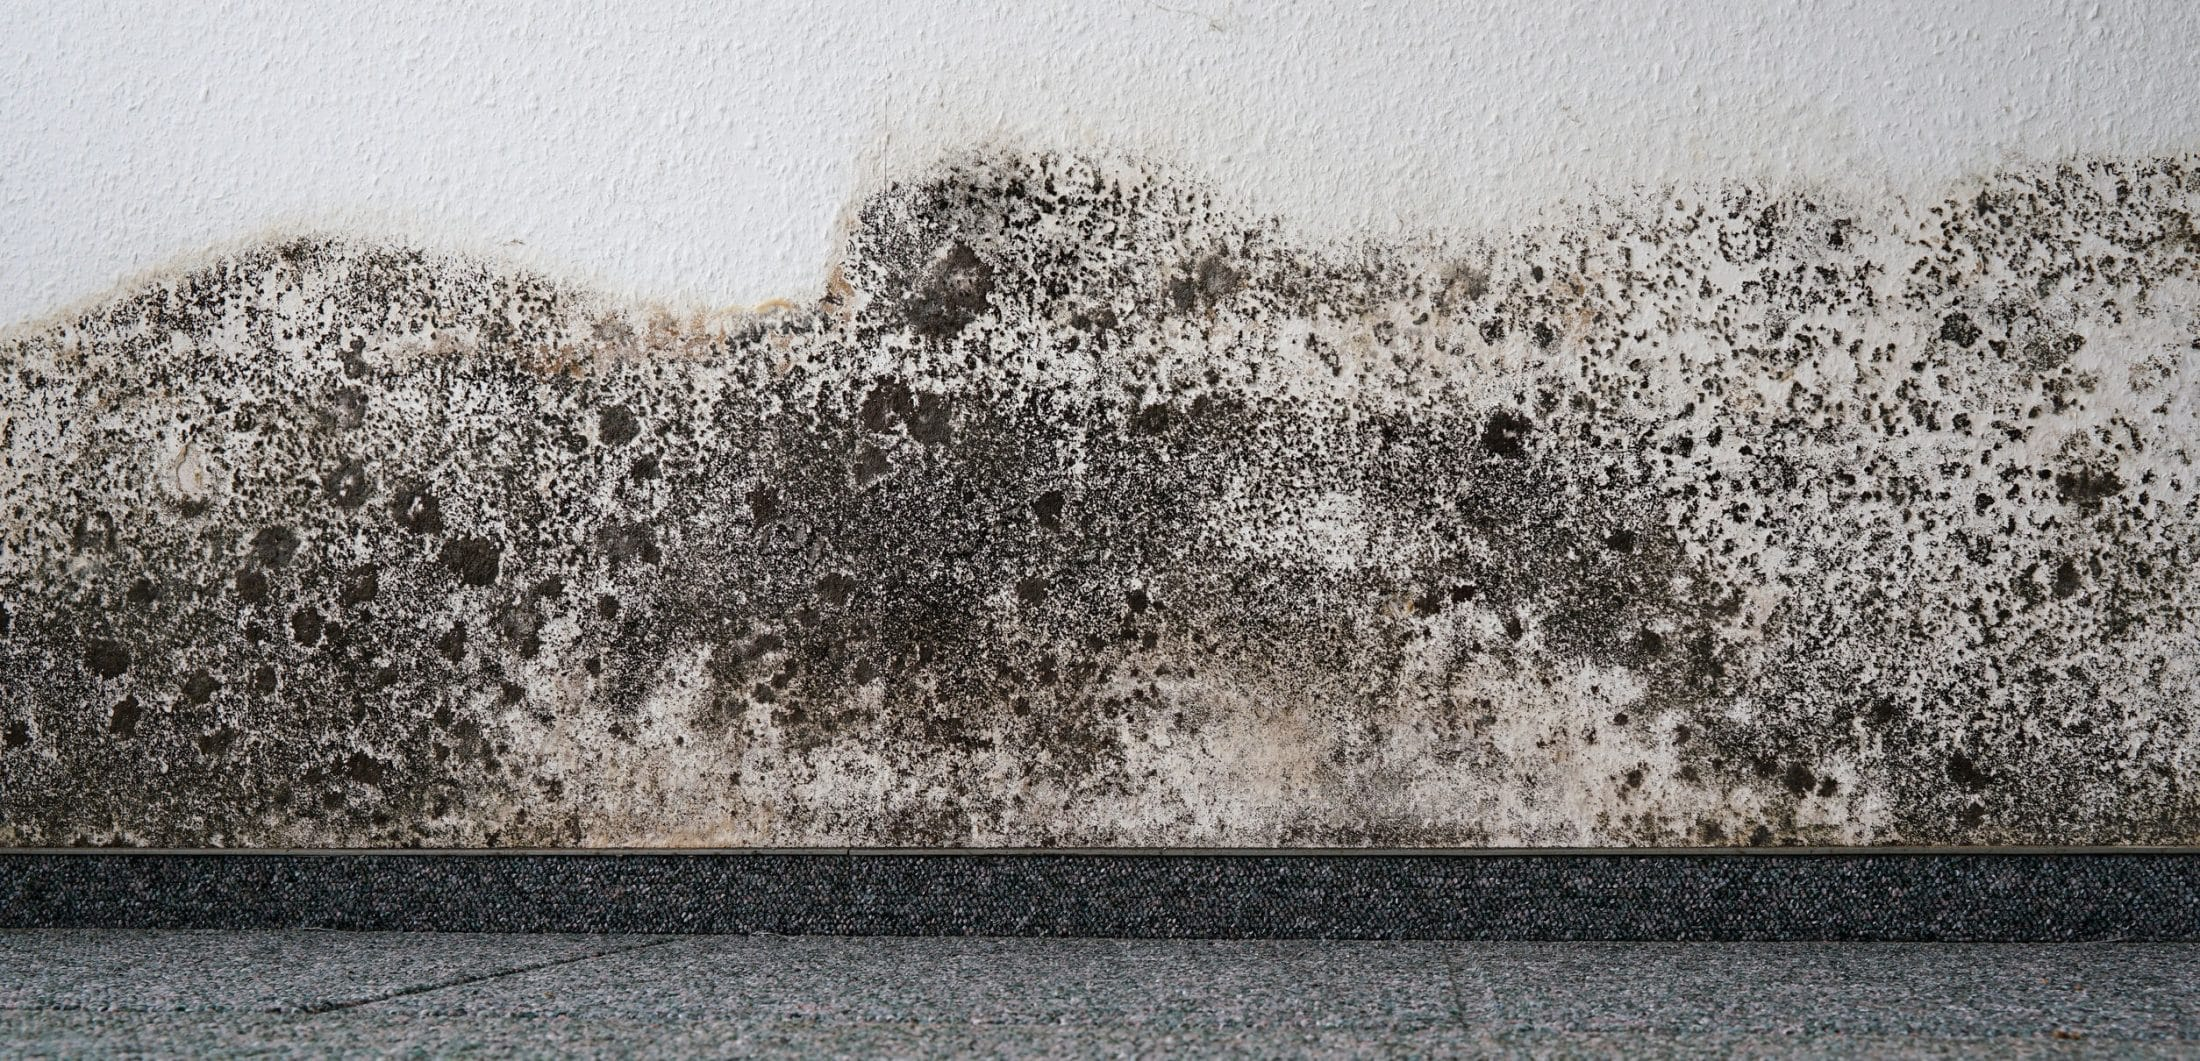 Mold on the wall of an apartment